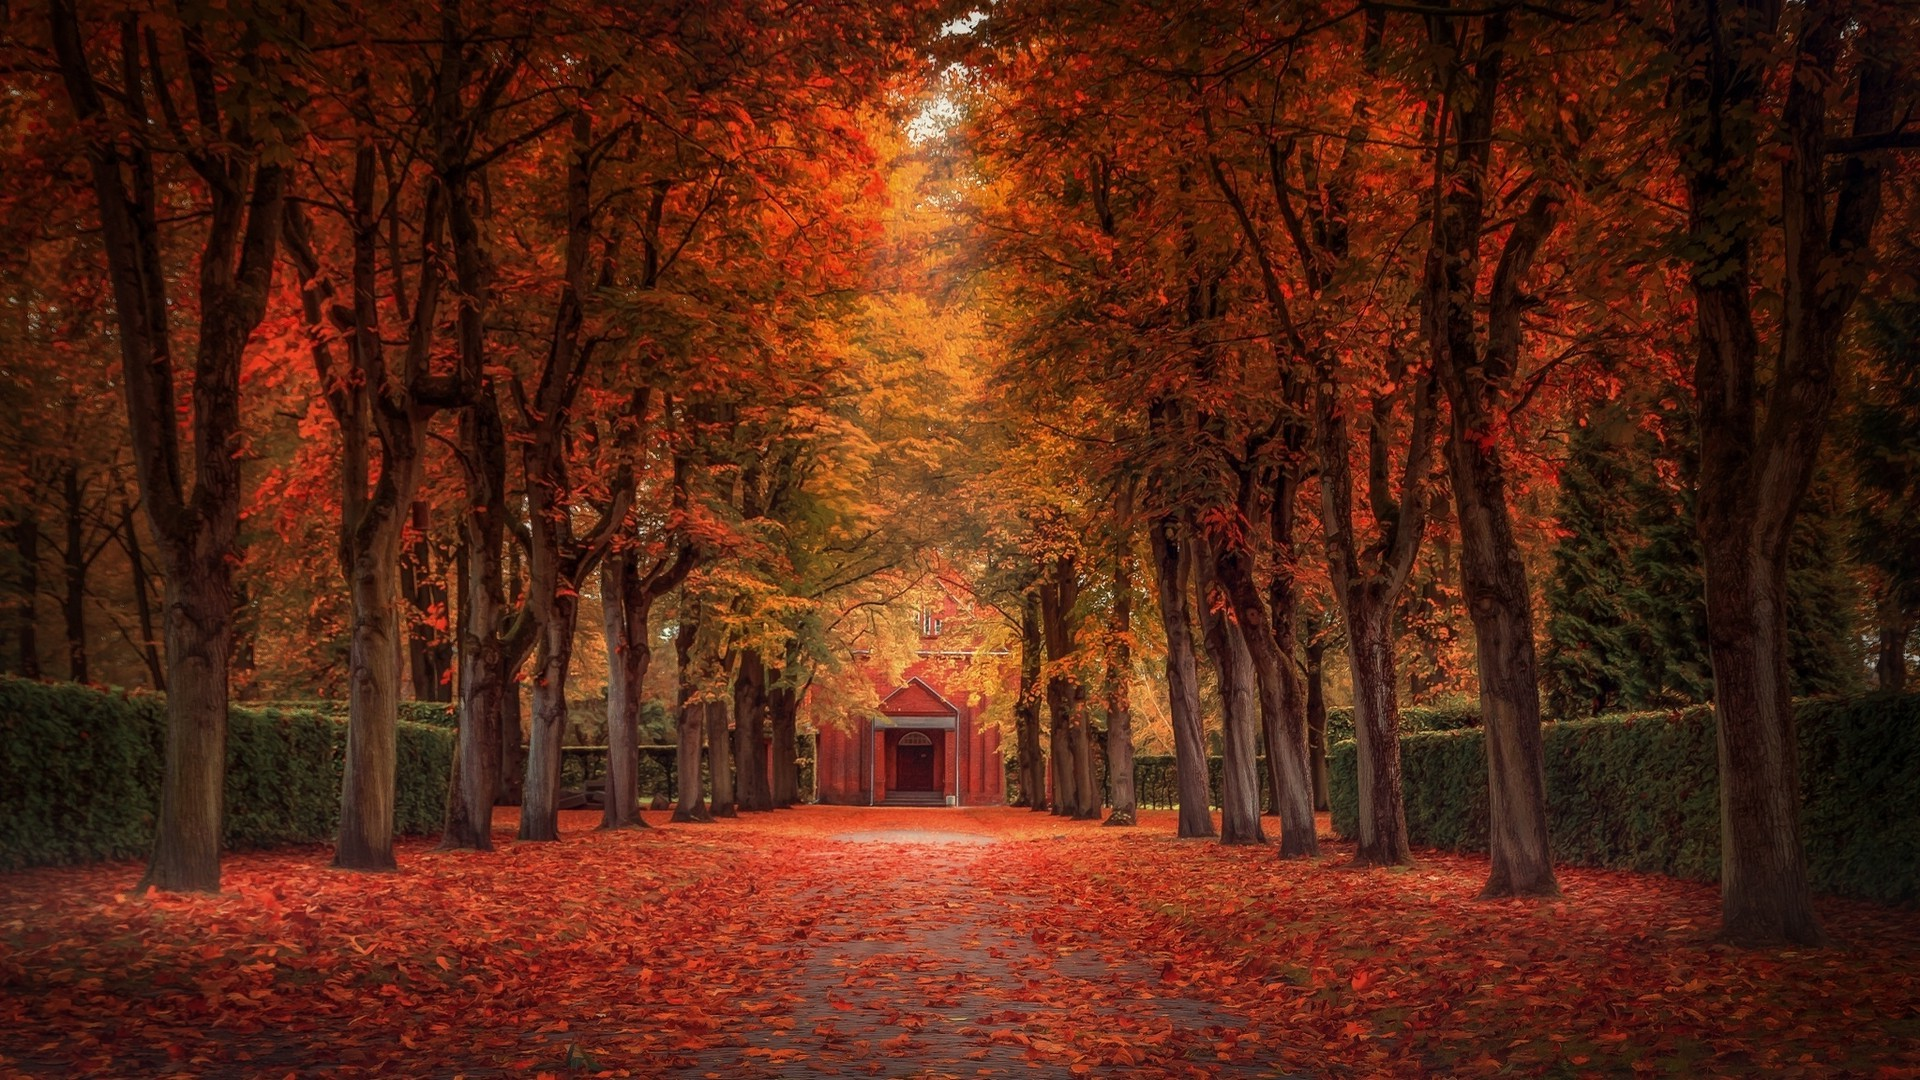 Fall Colors Desktop Wallpaper Nature Landscape Fall Leaves Trees Street Park